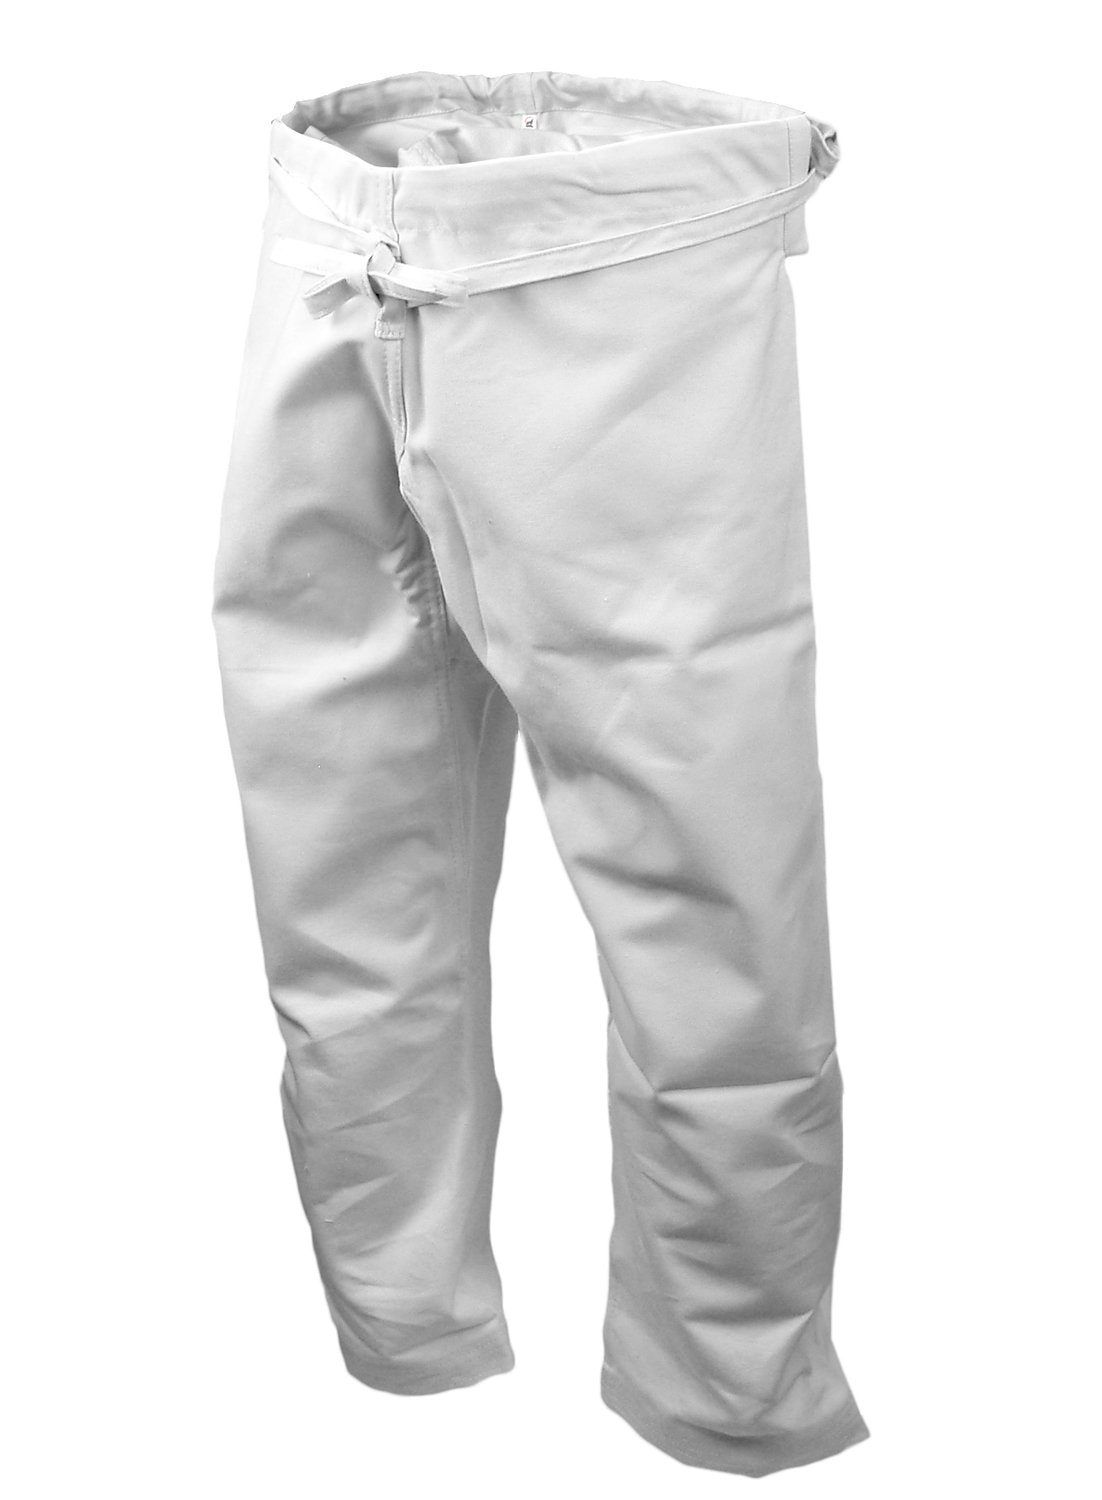 Karate Uniform, Pants, 14 oz., White